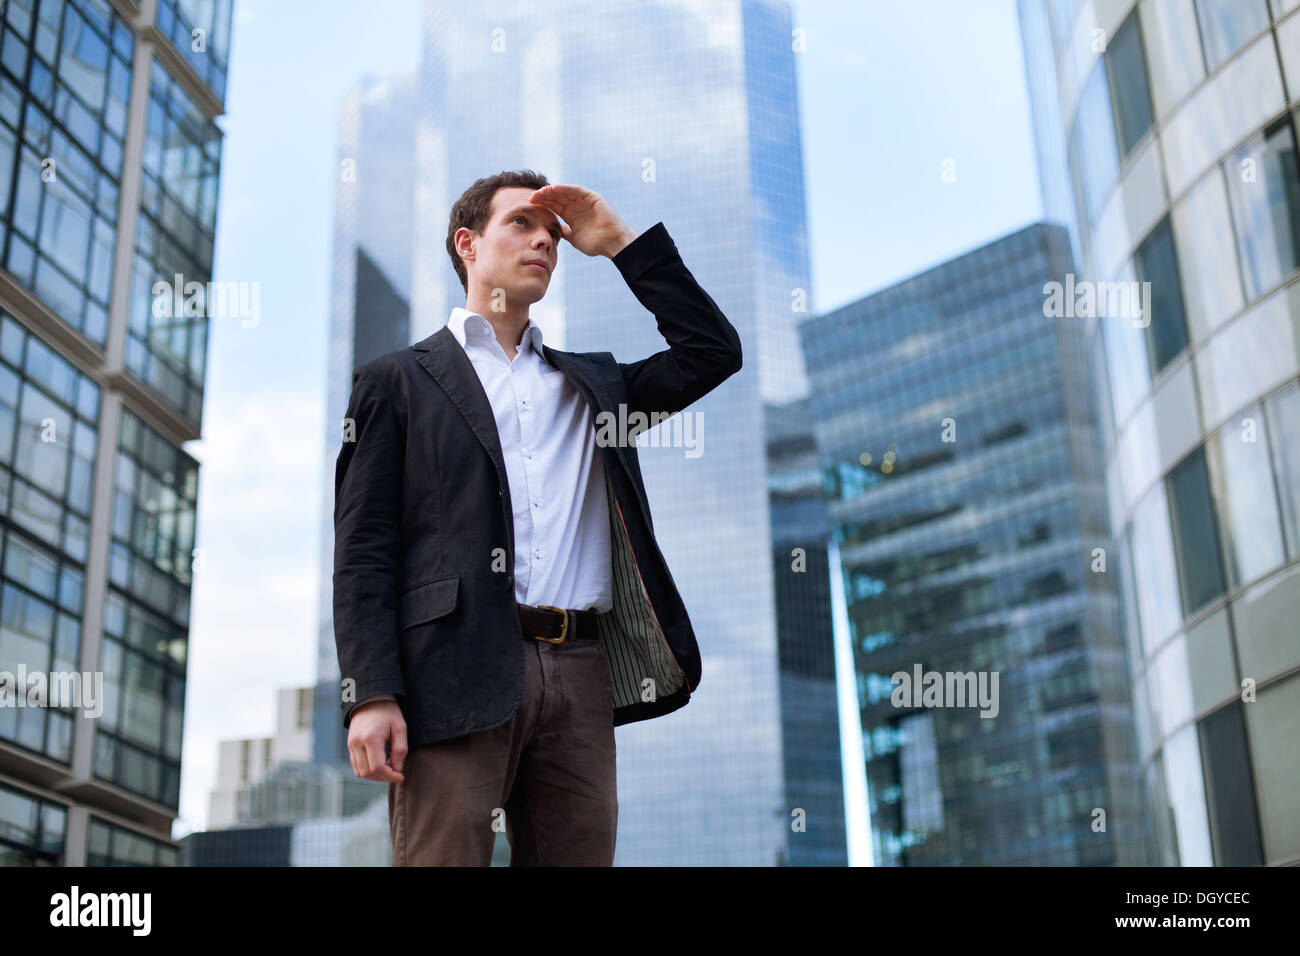 young business man looking forward on skyscrapers background - Stock Image